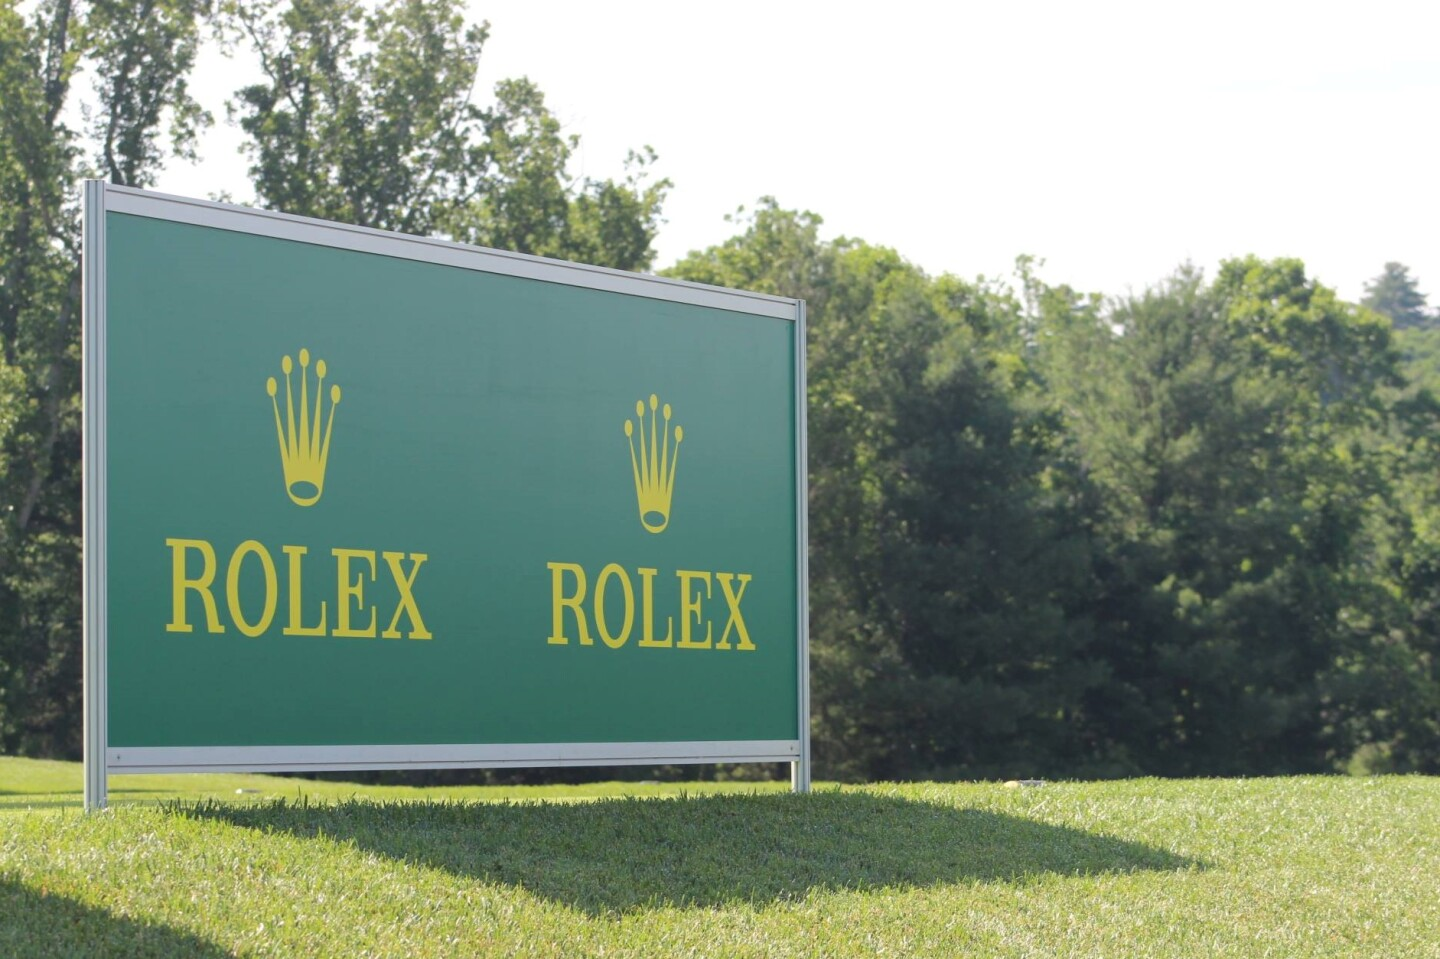 9684-three-things-for-tuesday-at-rolexgirls.jpg